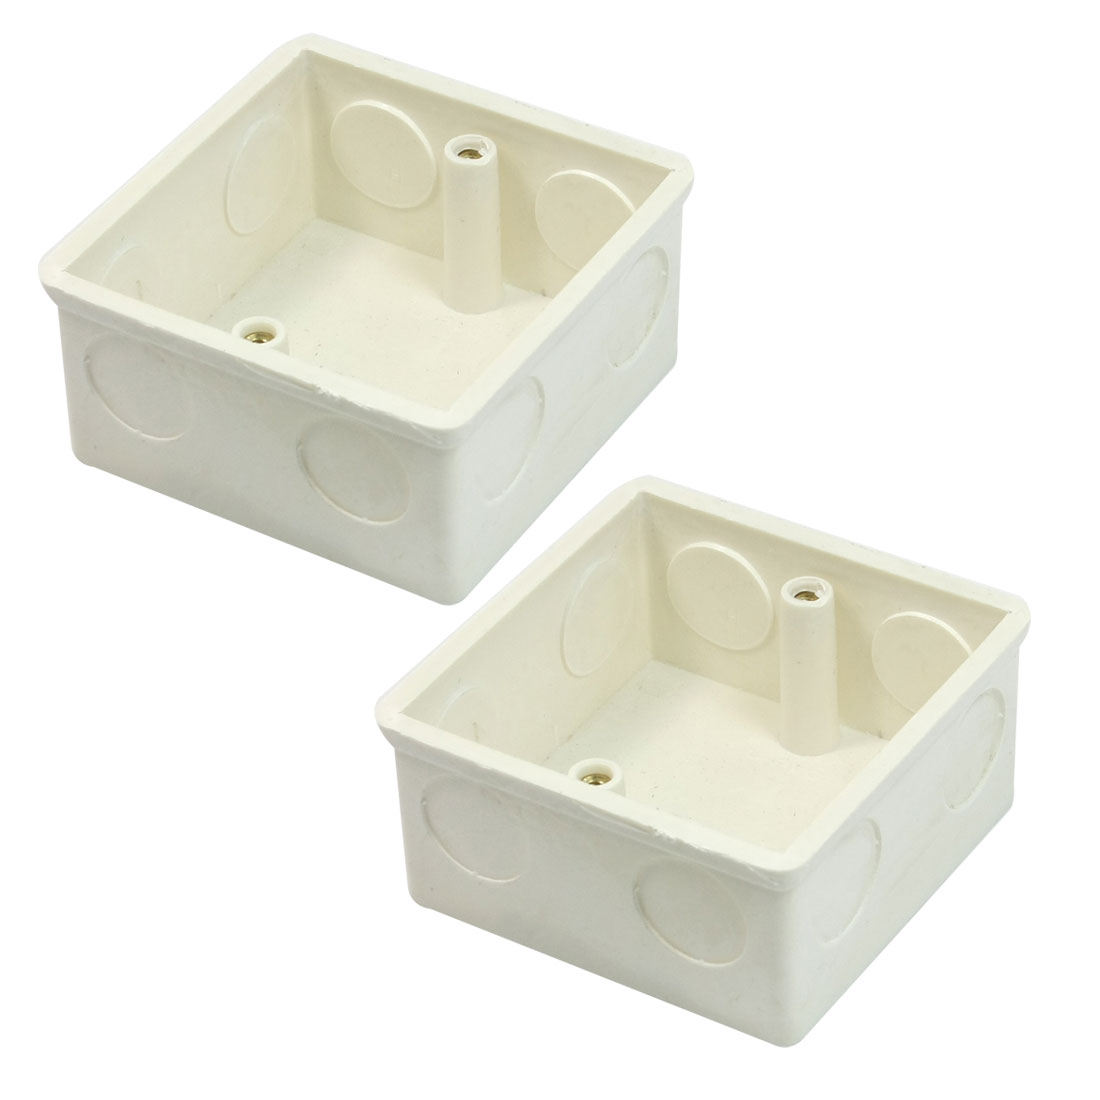 2 Pcs 77x77x38mm White PVC Flush-Type Wall Mounted Single Gang Junction Box